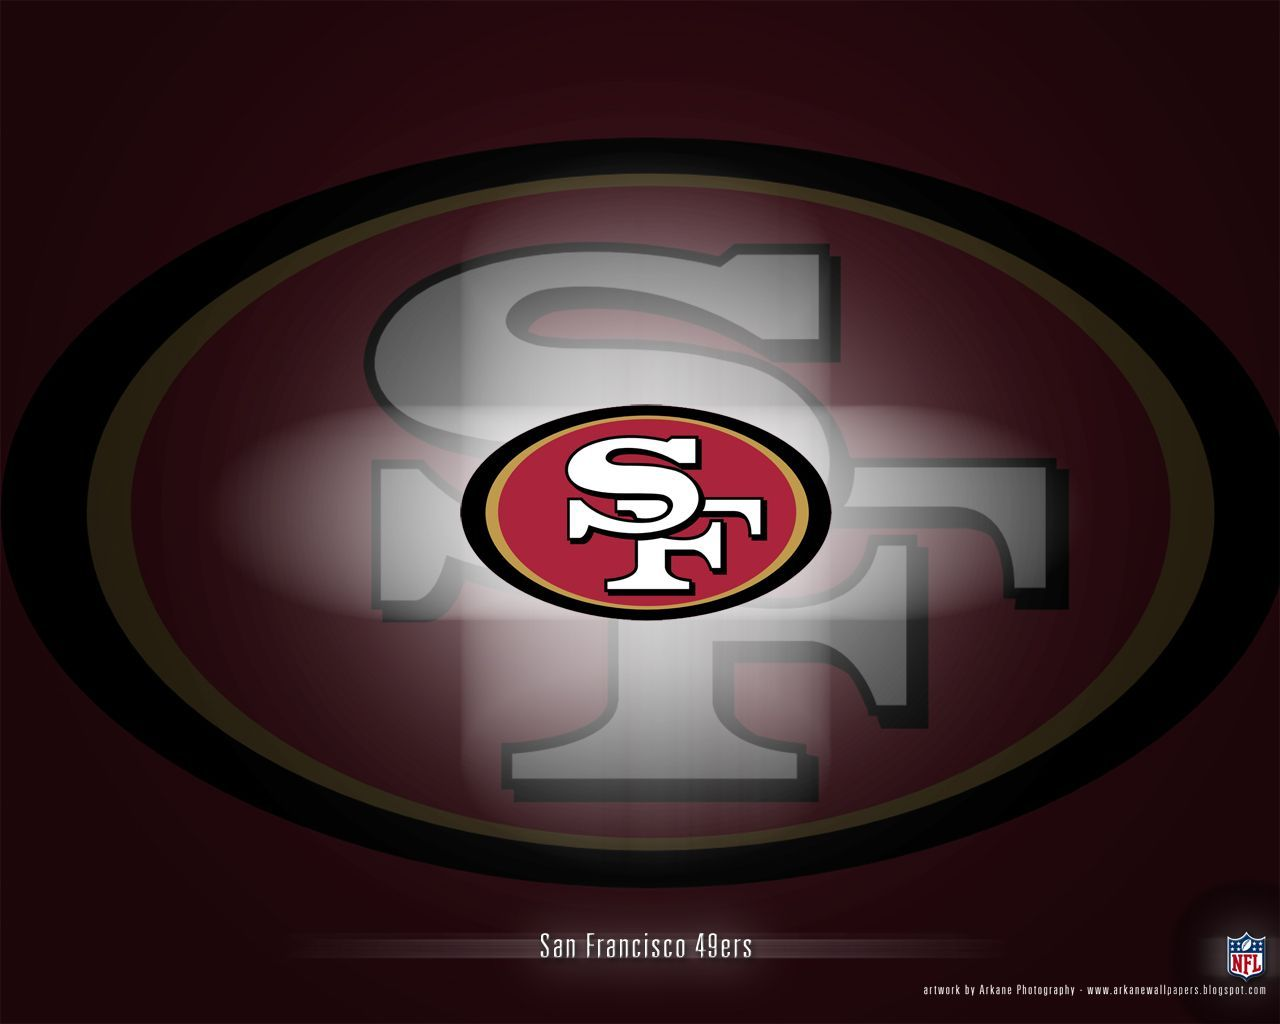 San Francisco 49ers Wallpapers Top Free San Francisco 49ers Backgrounds Wallpaperaccess